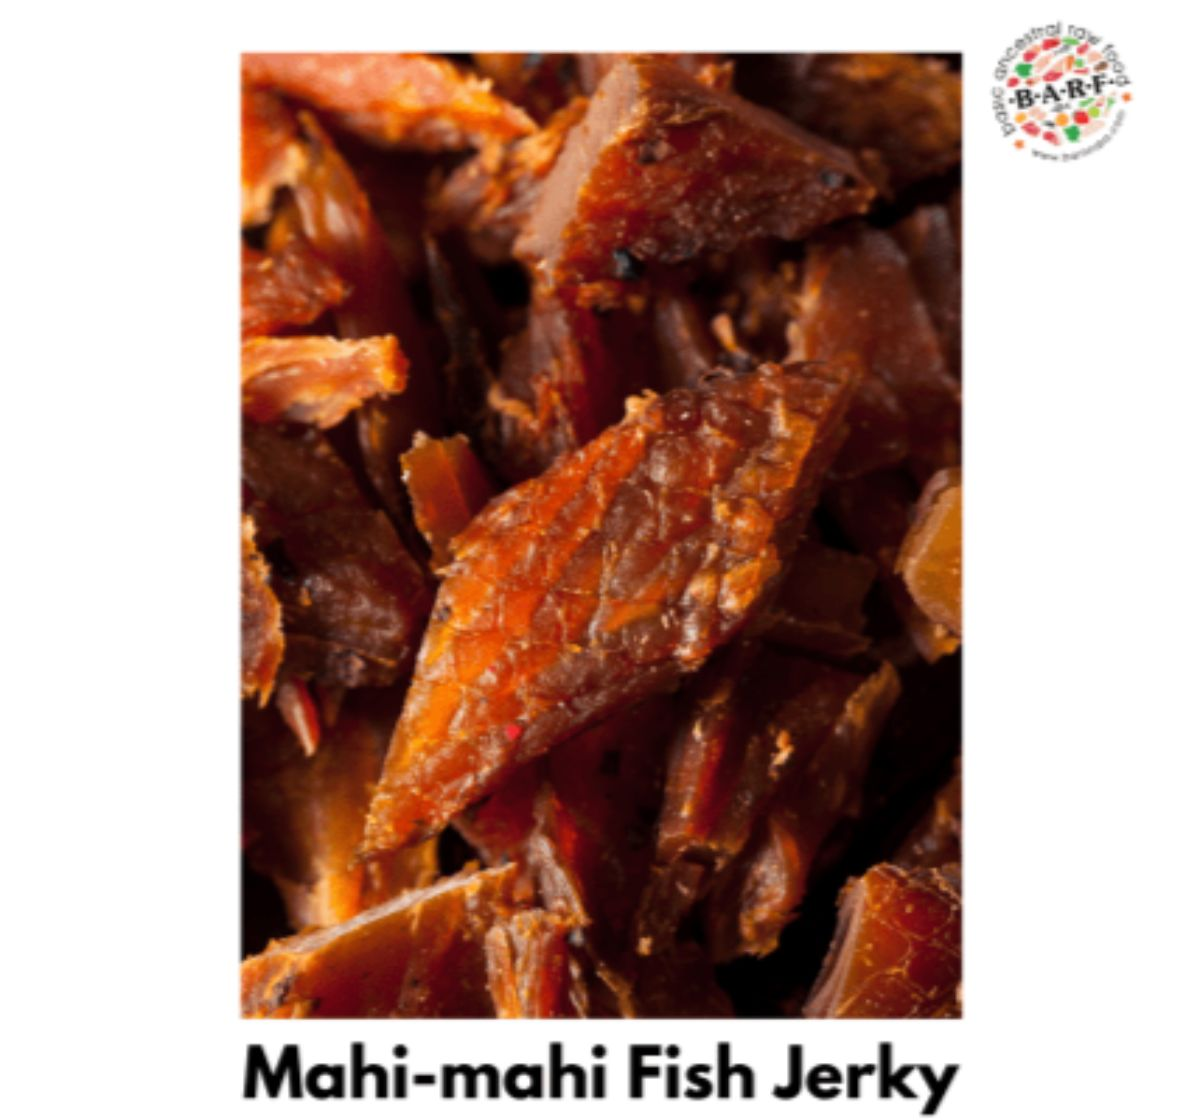 BARF Fish Jerky Mahi Mahi Dog Treat - 100 gm